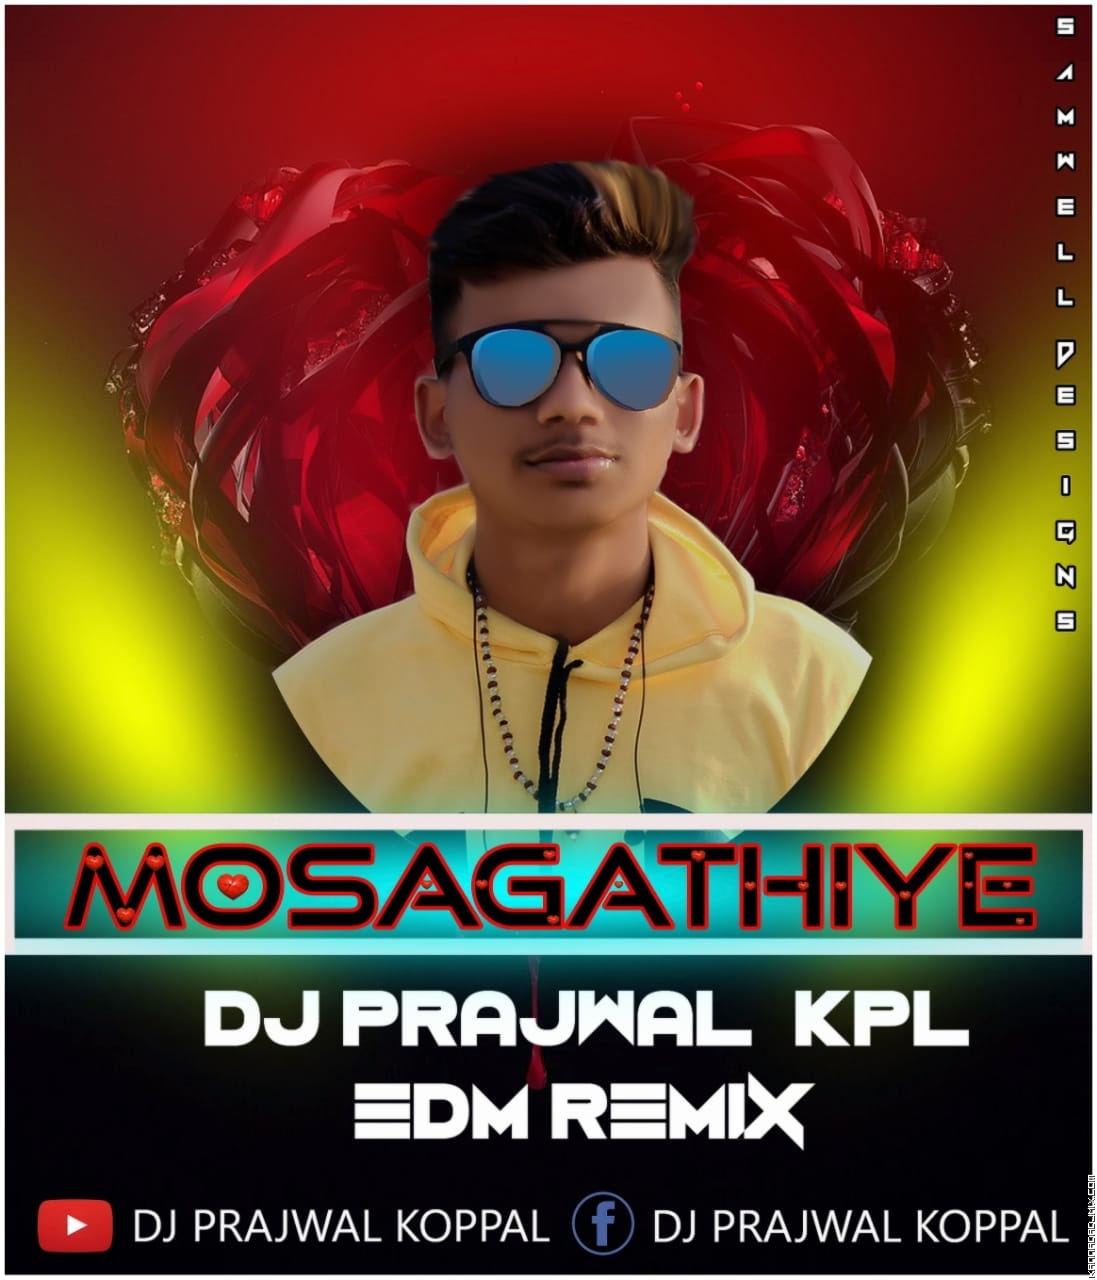 Mosagathiya Edm Drop Mix Dj prajwal kpL.mp3